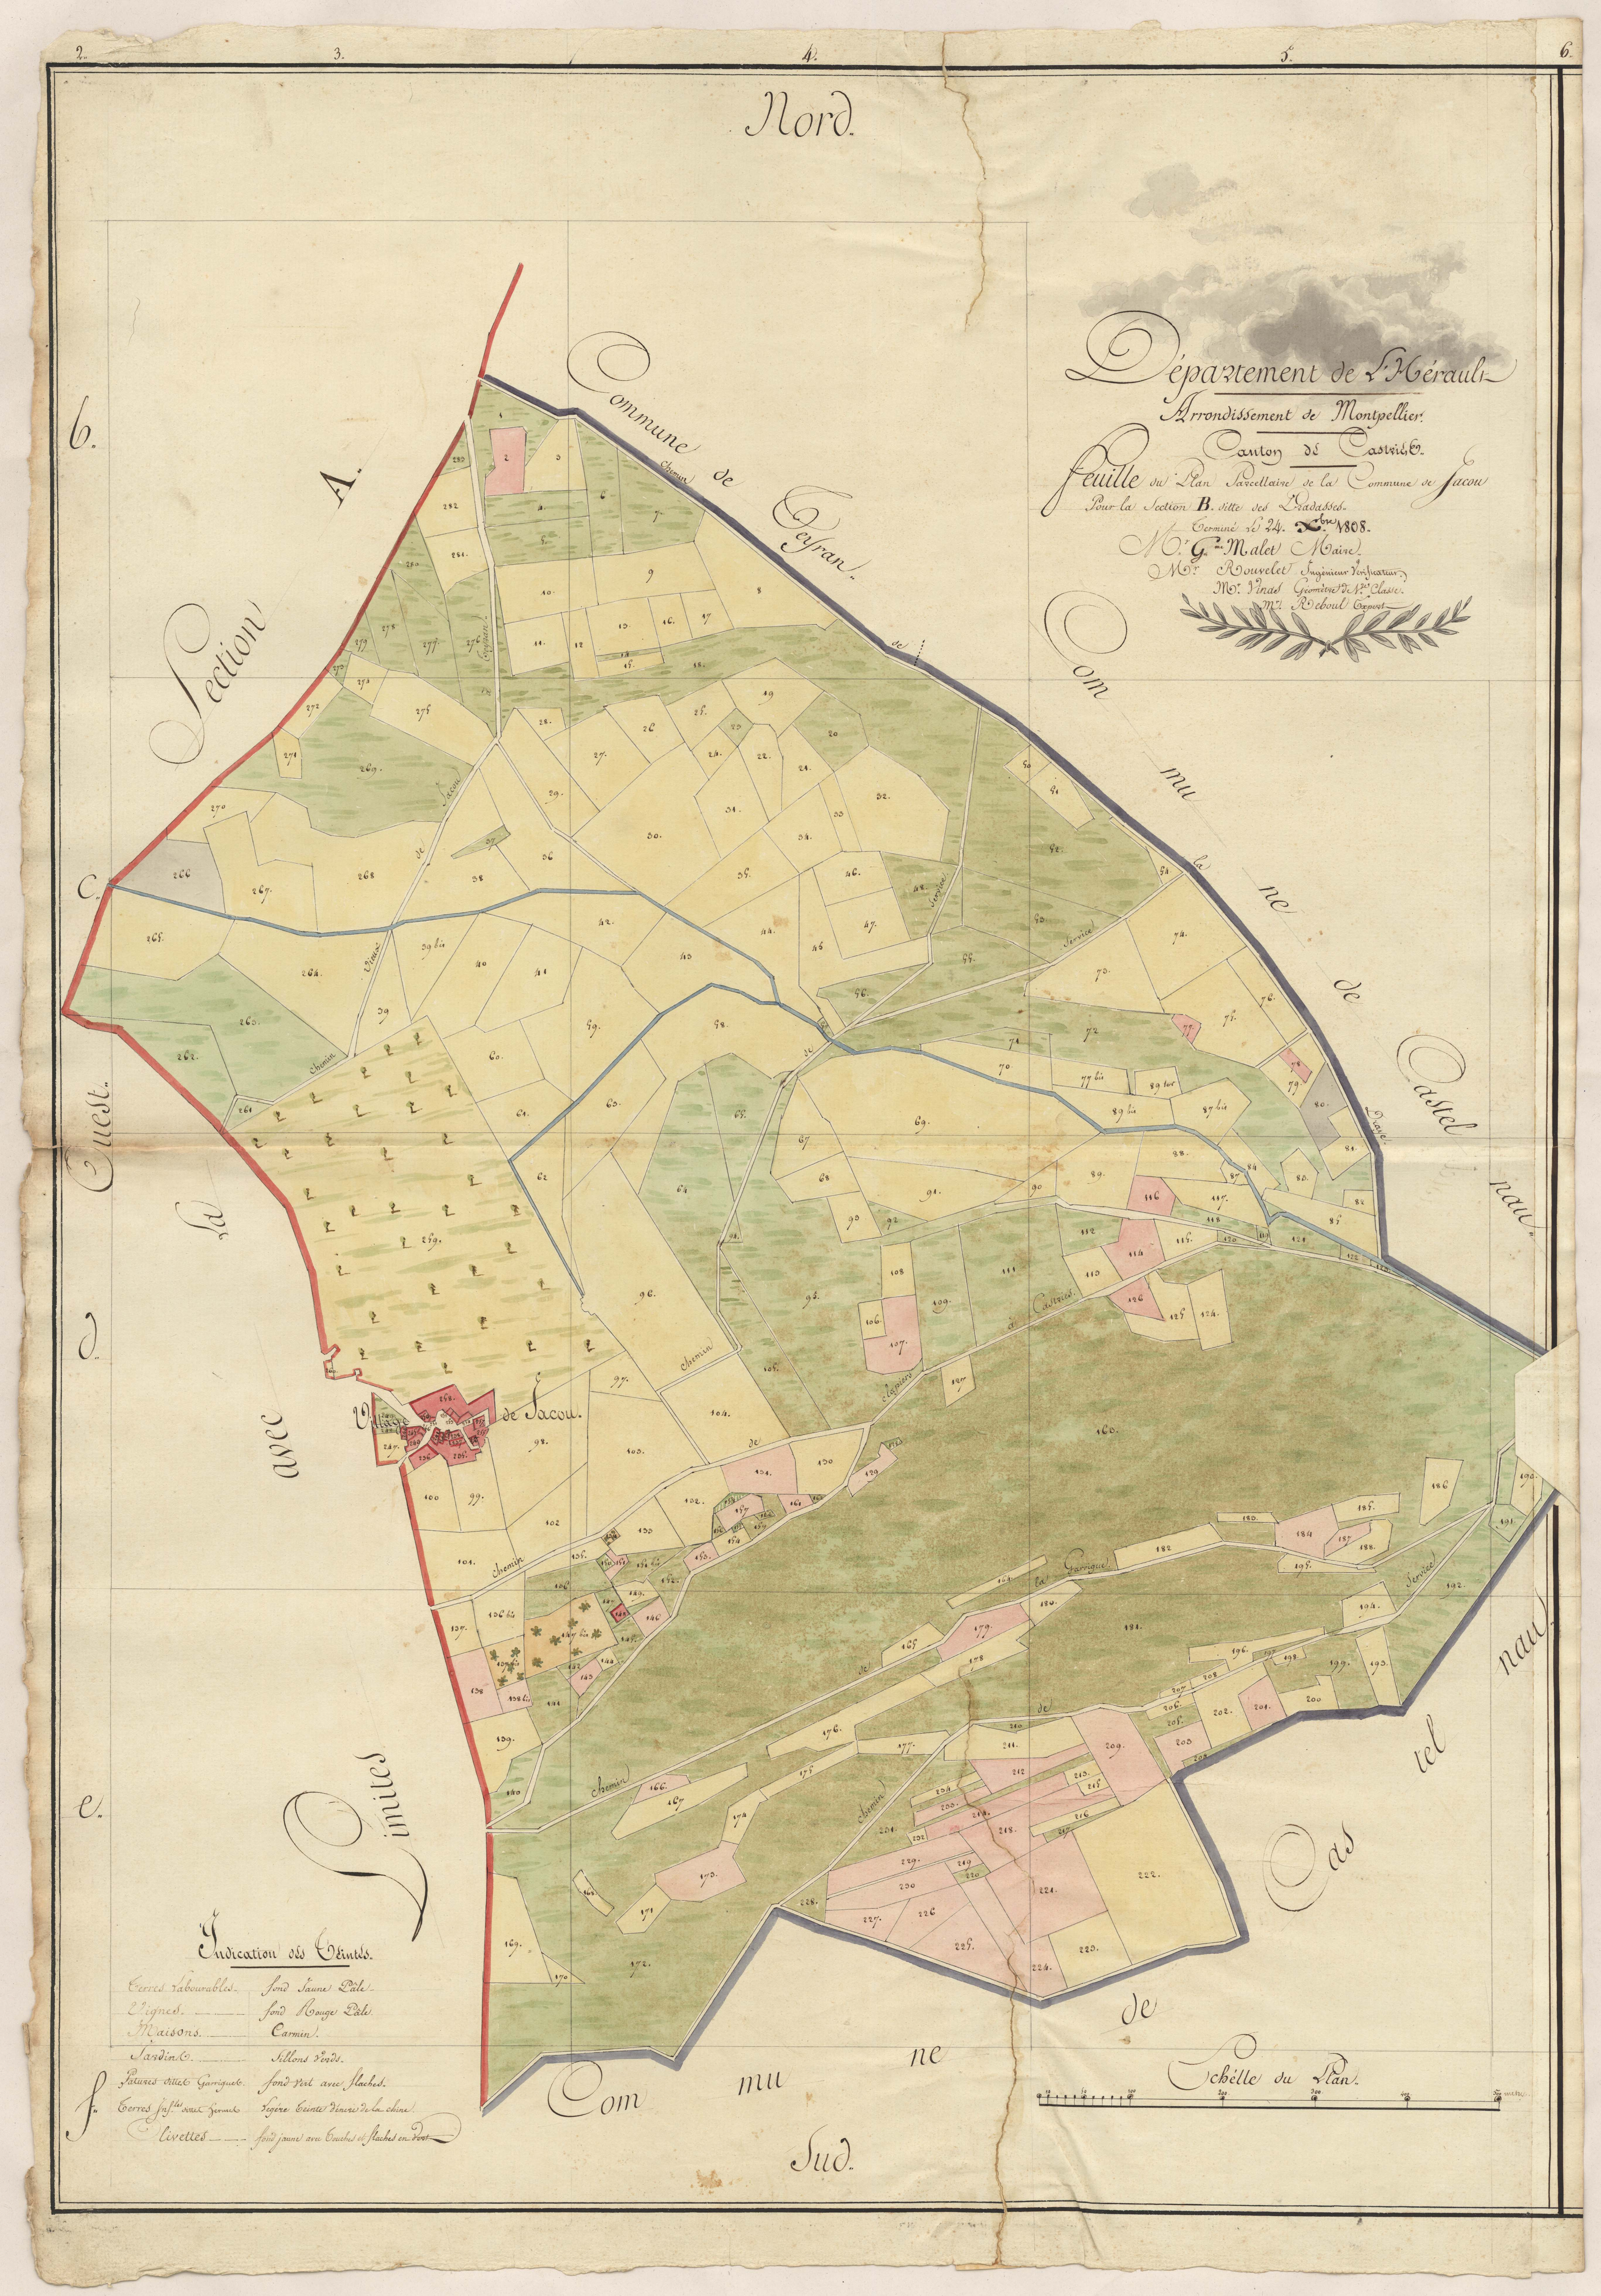 image 1808_Jacou_cadastre_section_B_est_de_la_communeArchives_dpartementales_de_lHrault.jpg (2.8MB)